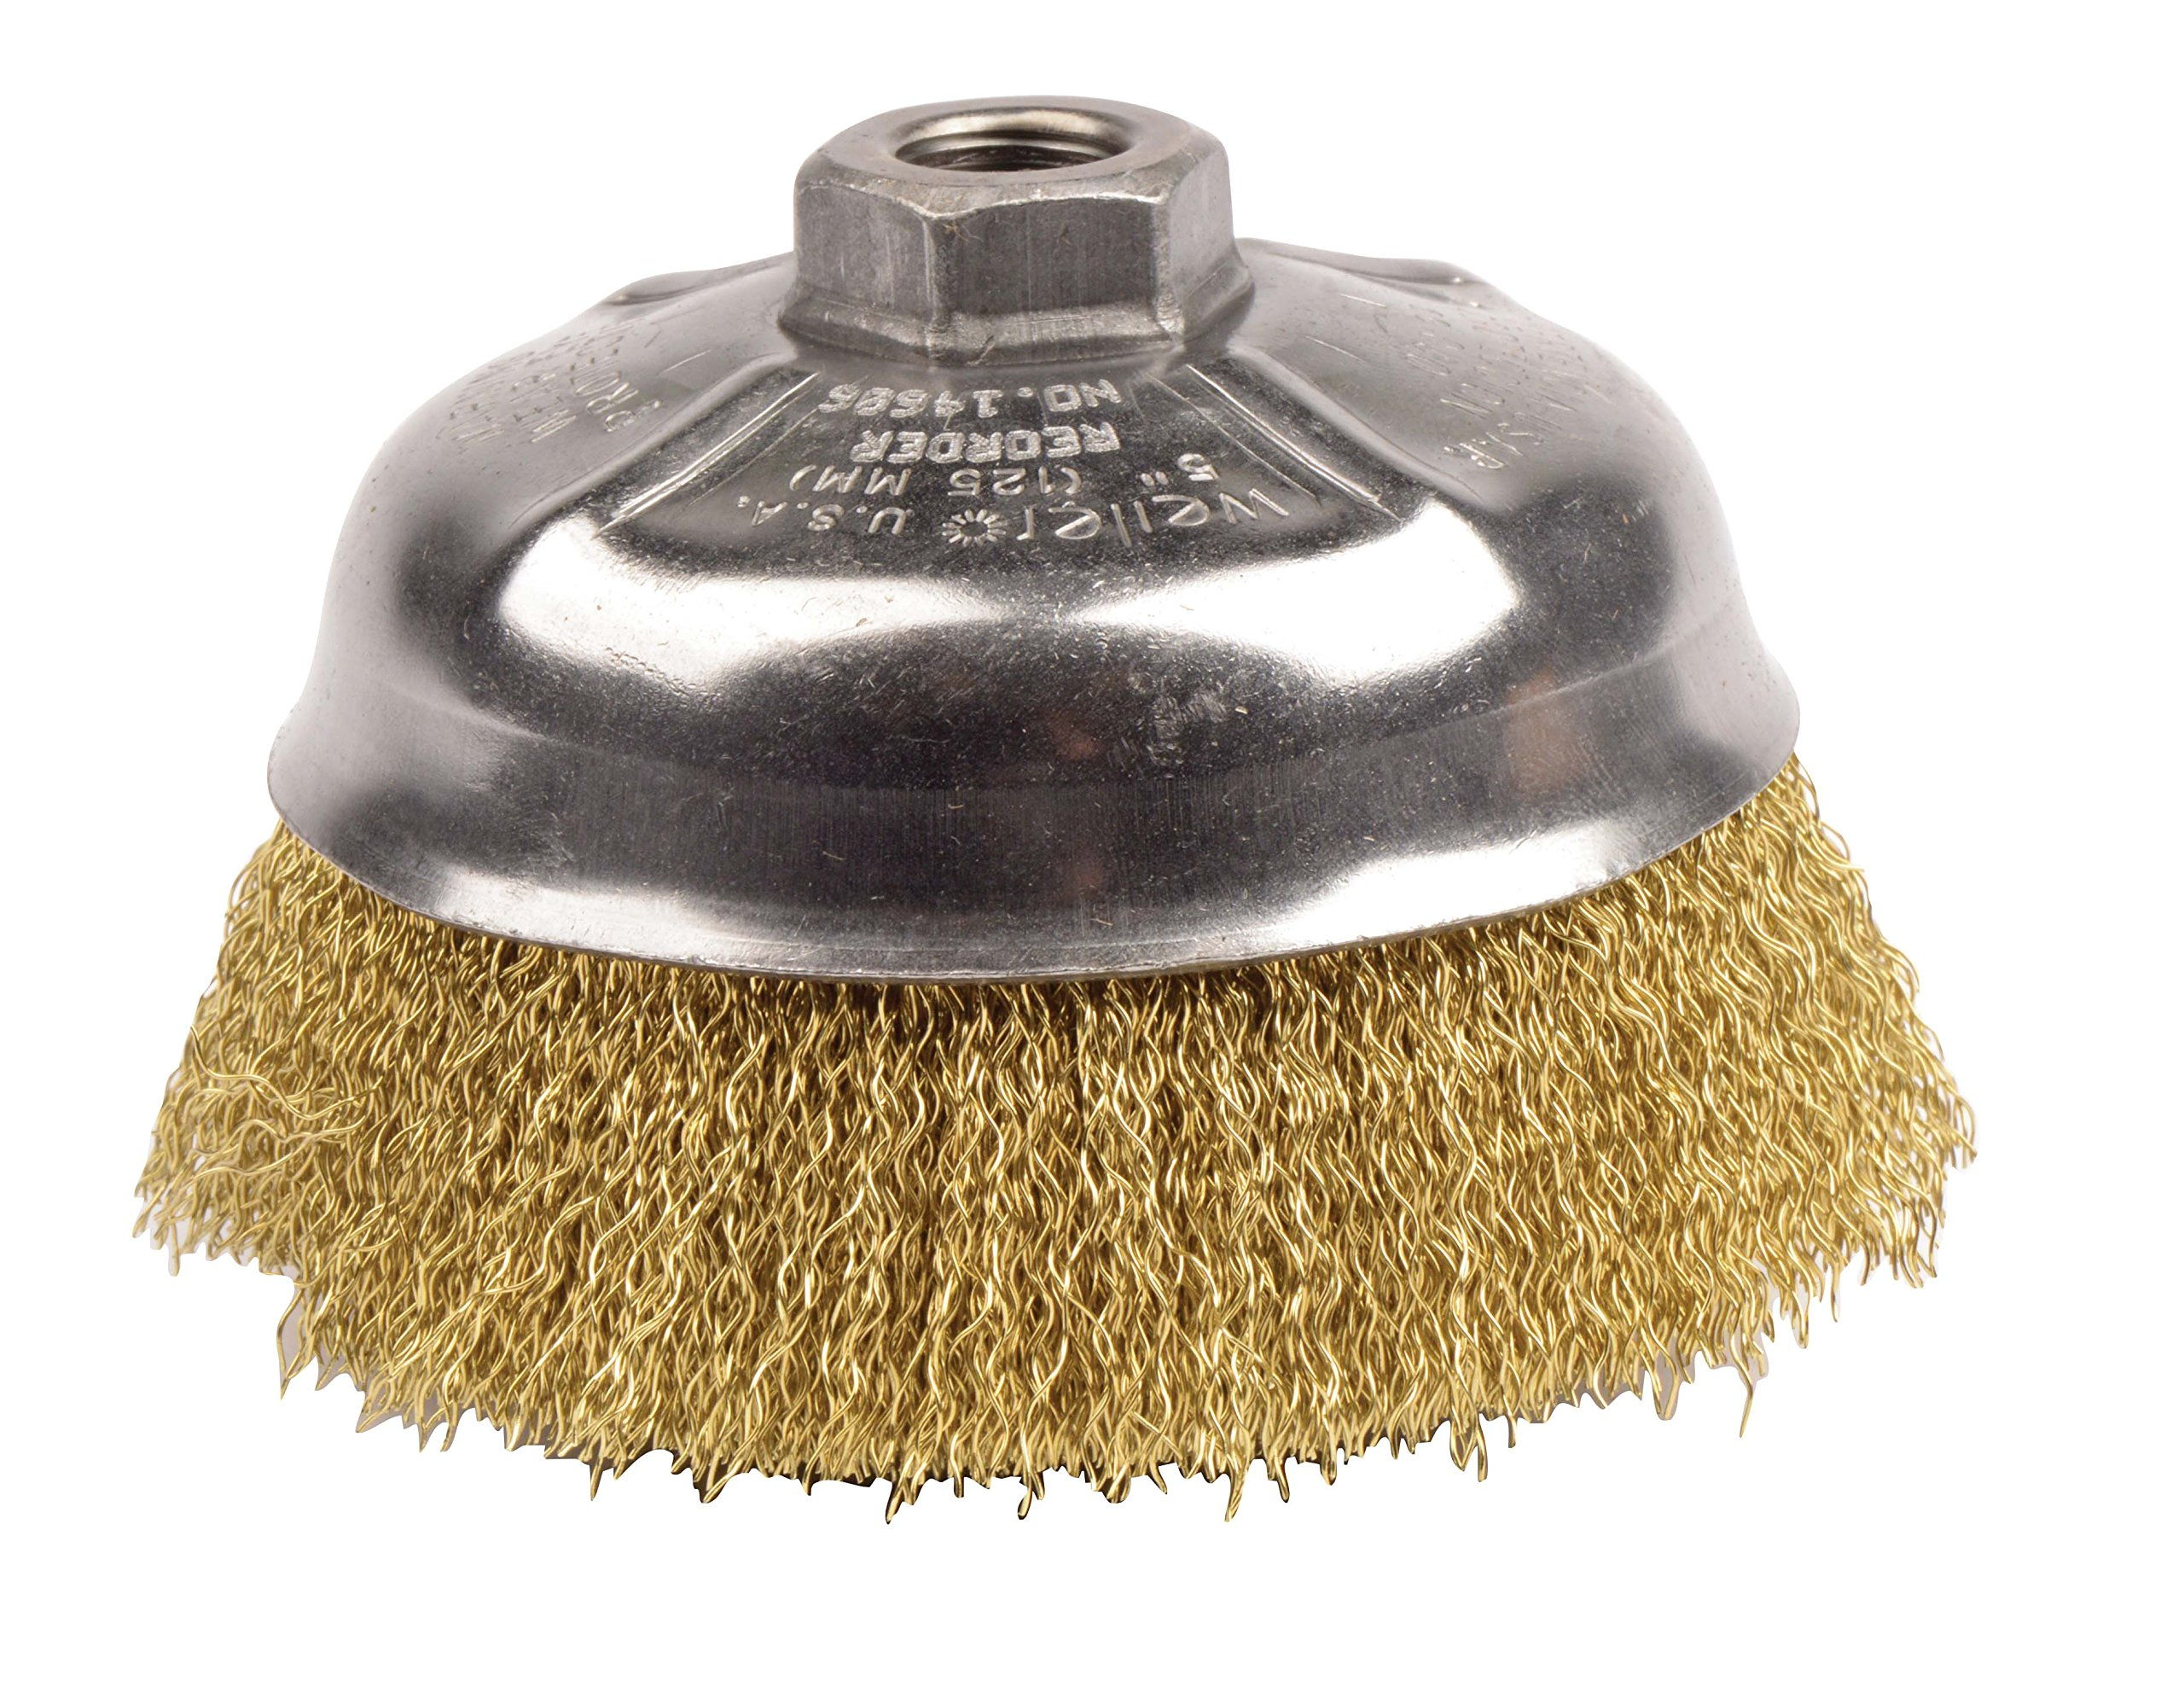 Weiler 14606 Crimped Wire Cup Brush, 5'', 0.14'' Brass Fill, 5/8''-11 UNC Nut